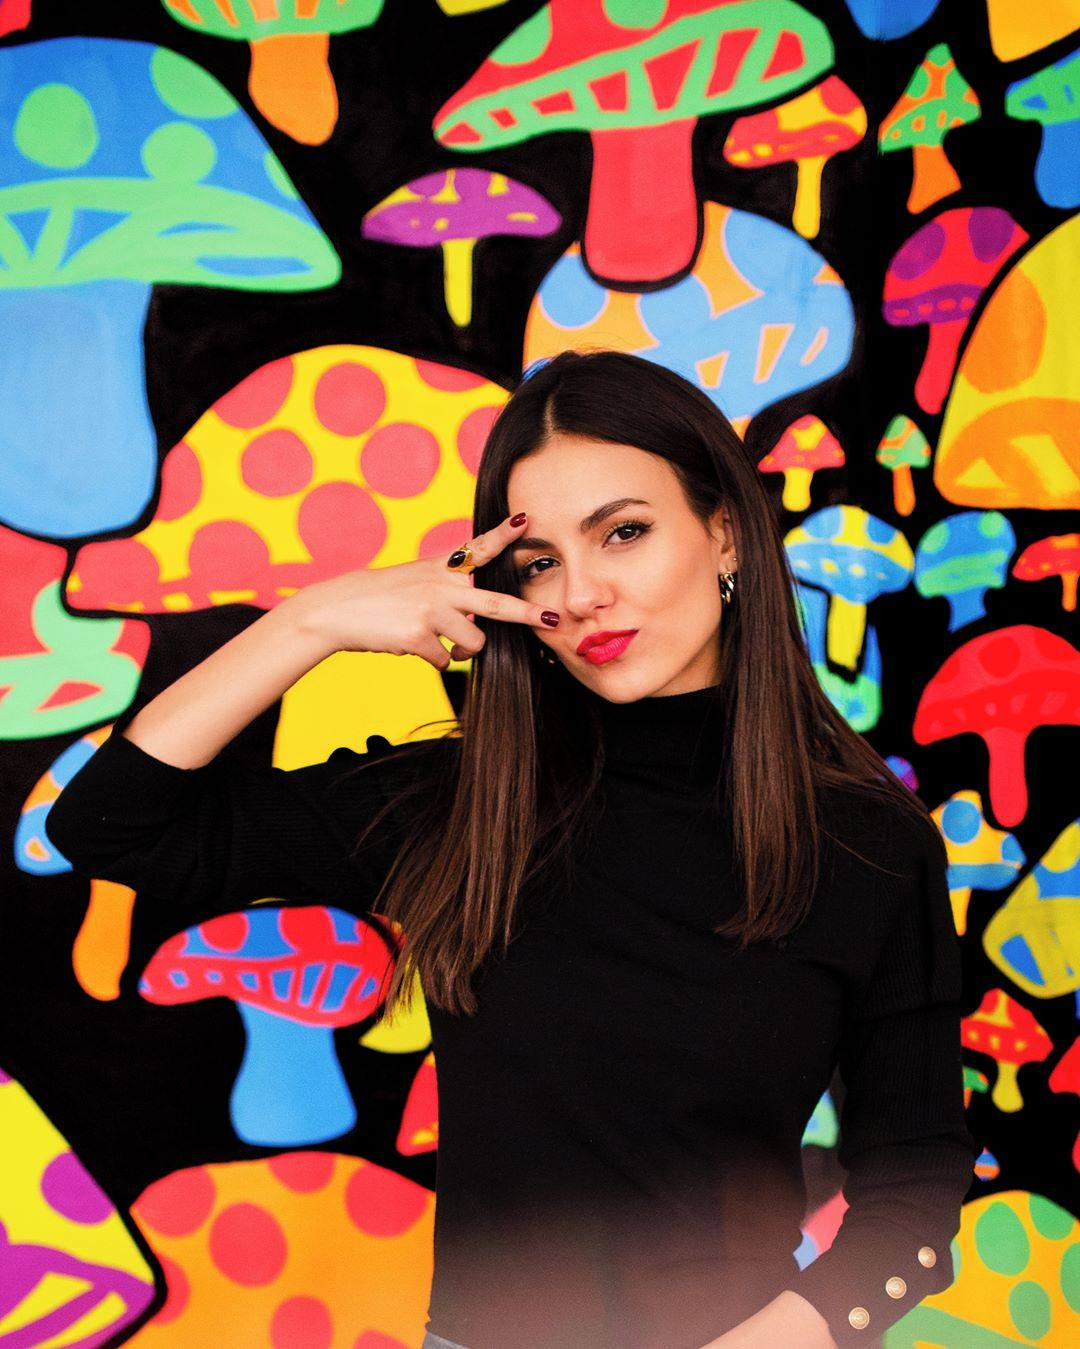 Victoria Justice Pose In Beautiful Photoshoot By Mike Monaghan.